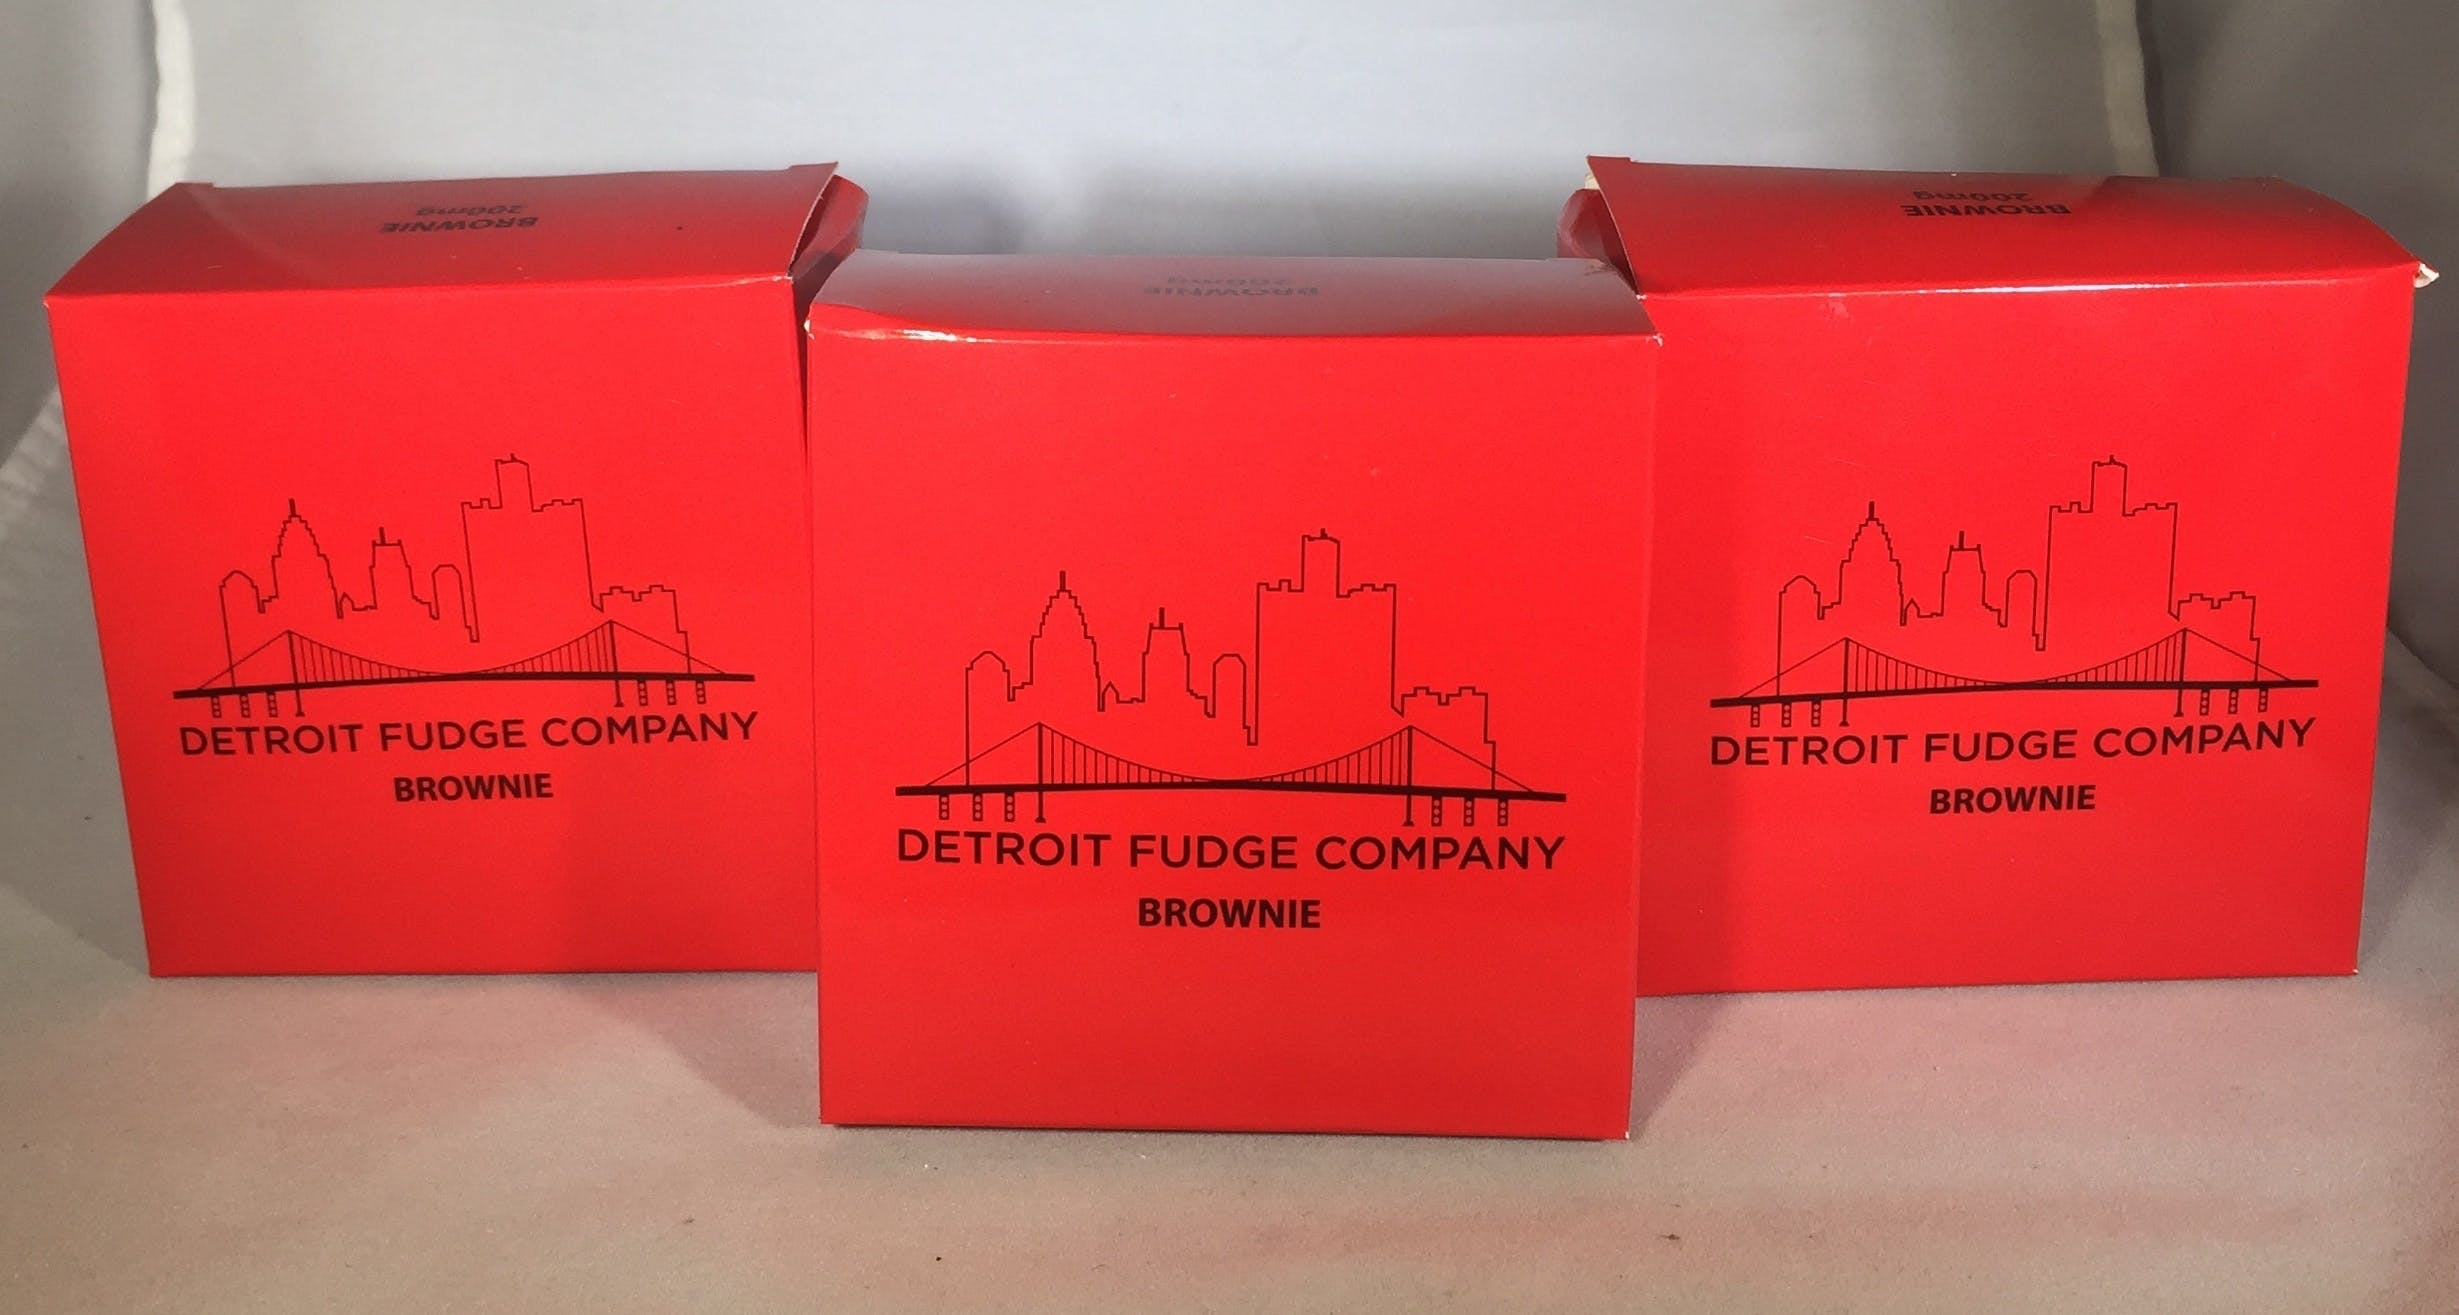 marijuana-dispensaries-261-burke-street-river-rouge-detroit-fudge-company-200mg-brownie